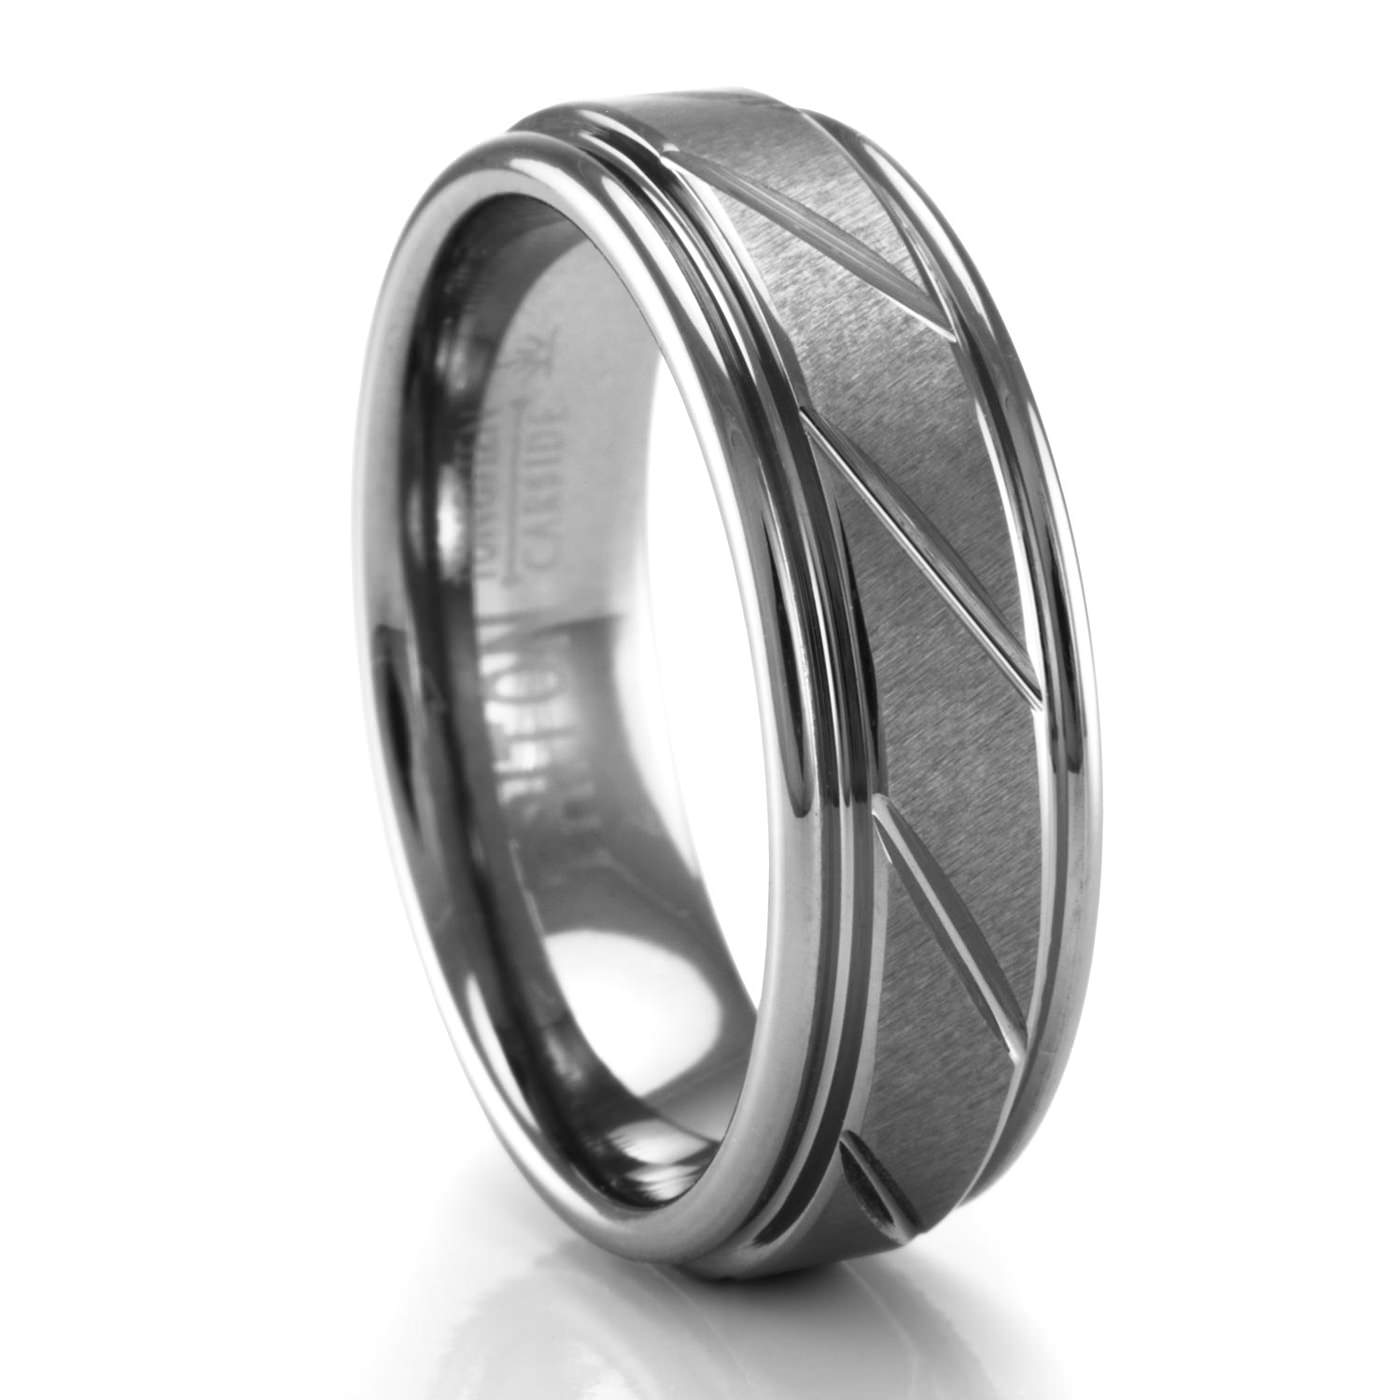 skatellsmanufacturing smj desc col wedding triton rings bands mr